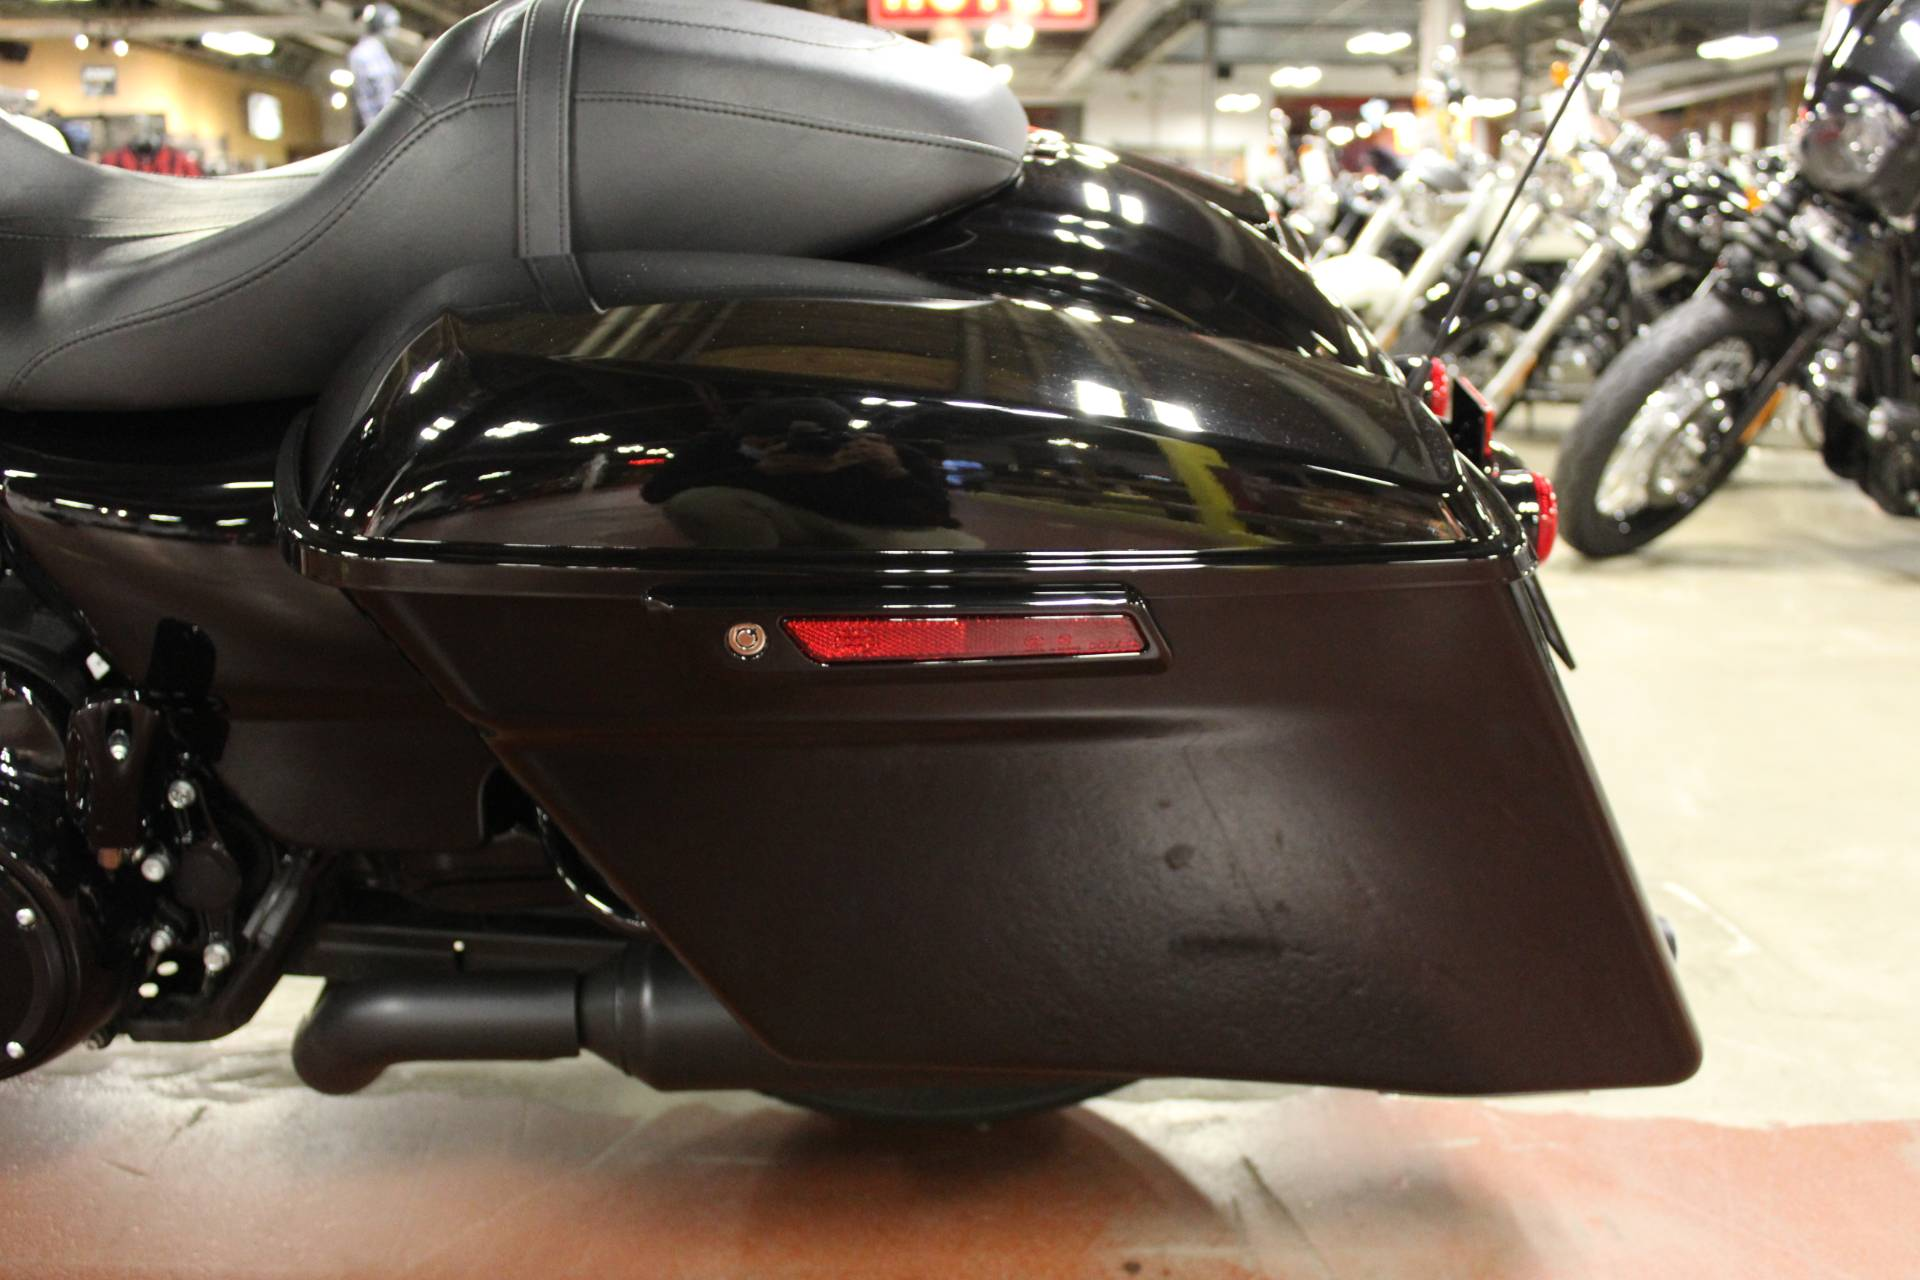 2019 Harley-Davidson Road Glide® Special in New London, Connecticut - Photo 22